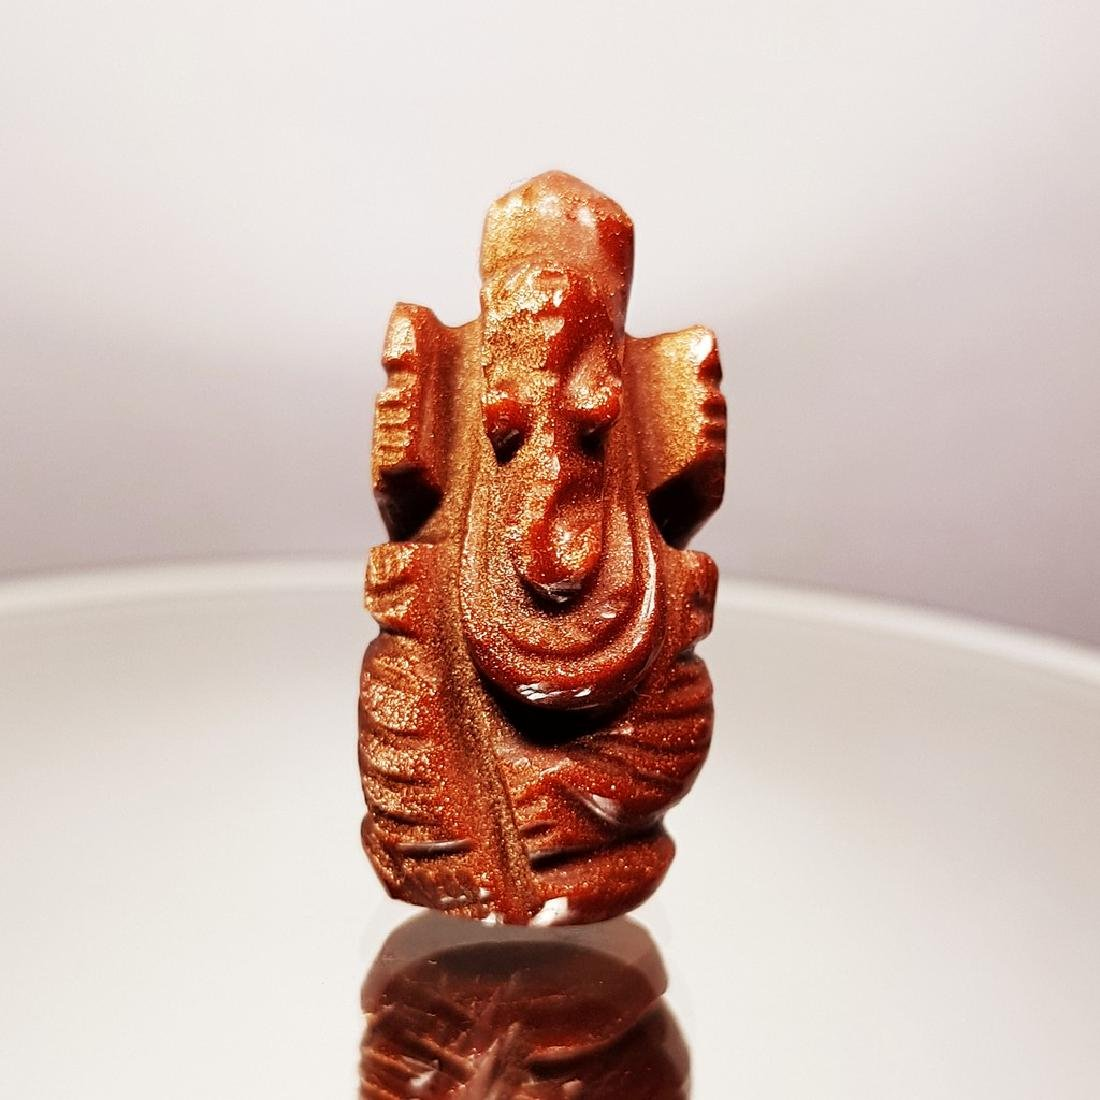 Sun Stone Lord Ganesha Carving - 36.94 ct